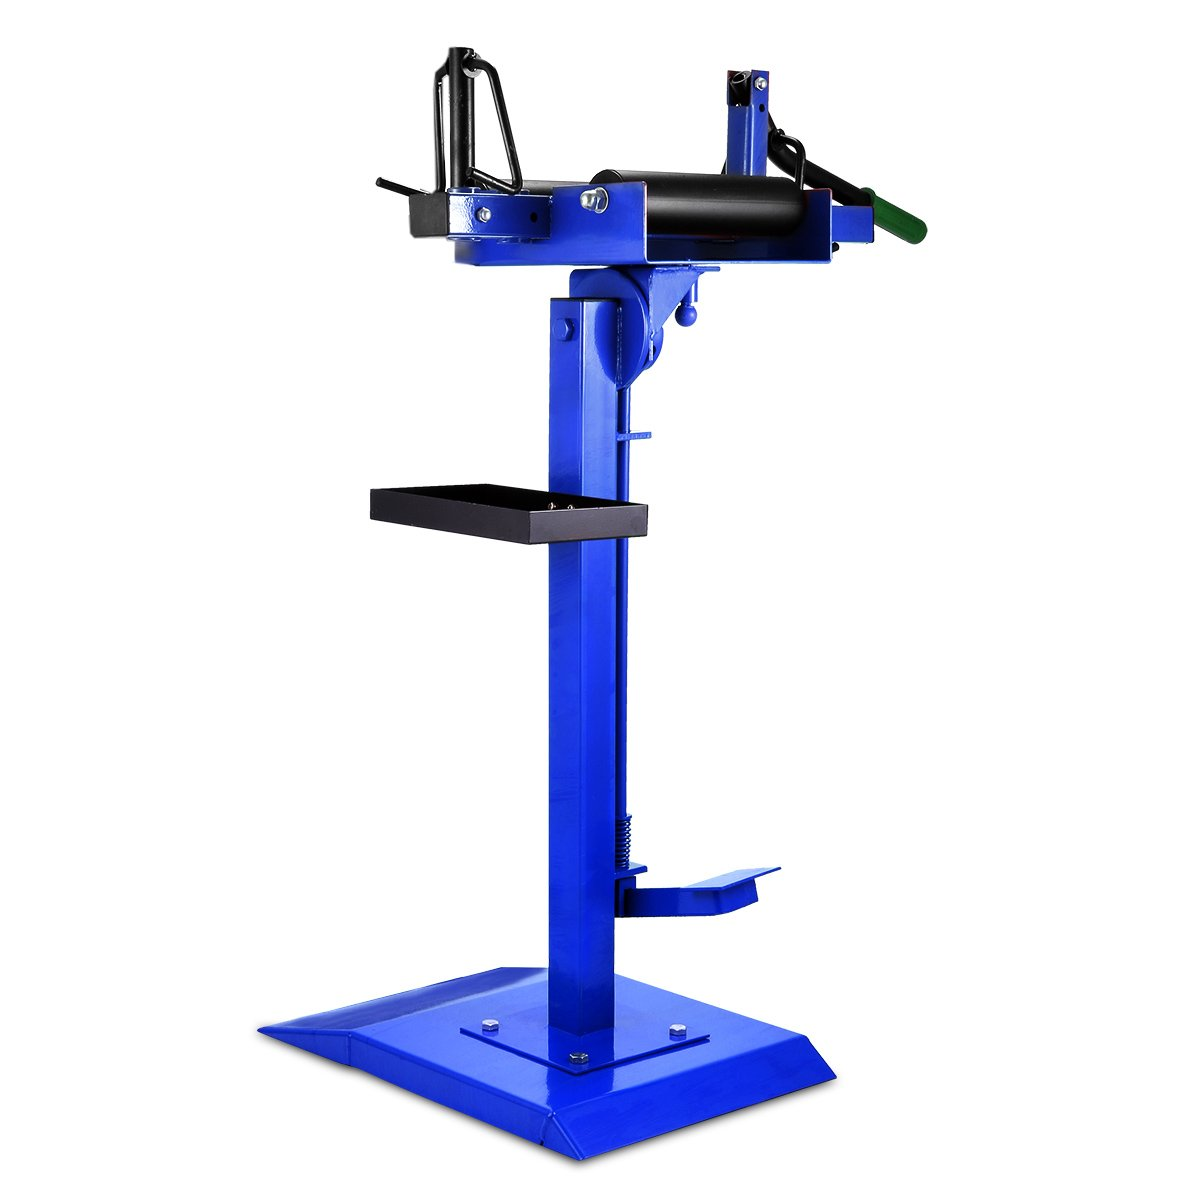 Mophorn Manual Tire Spreader Portable Tire Changer with Stand Adjustable Tire Spreader Tool for Light Truck and Car (Tire Spreader)